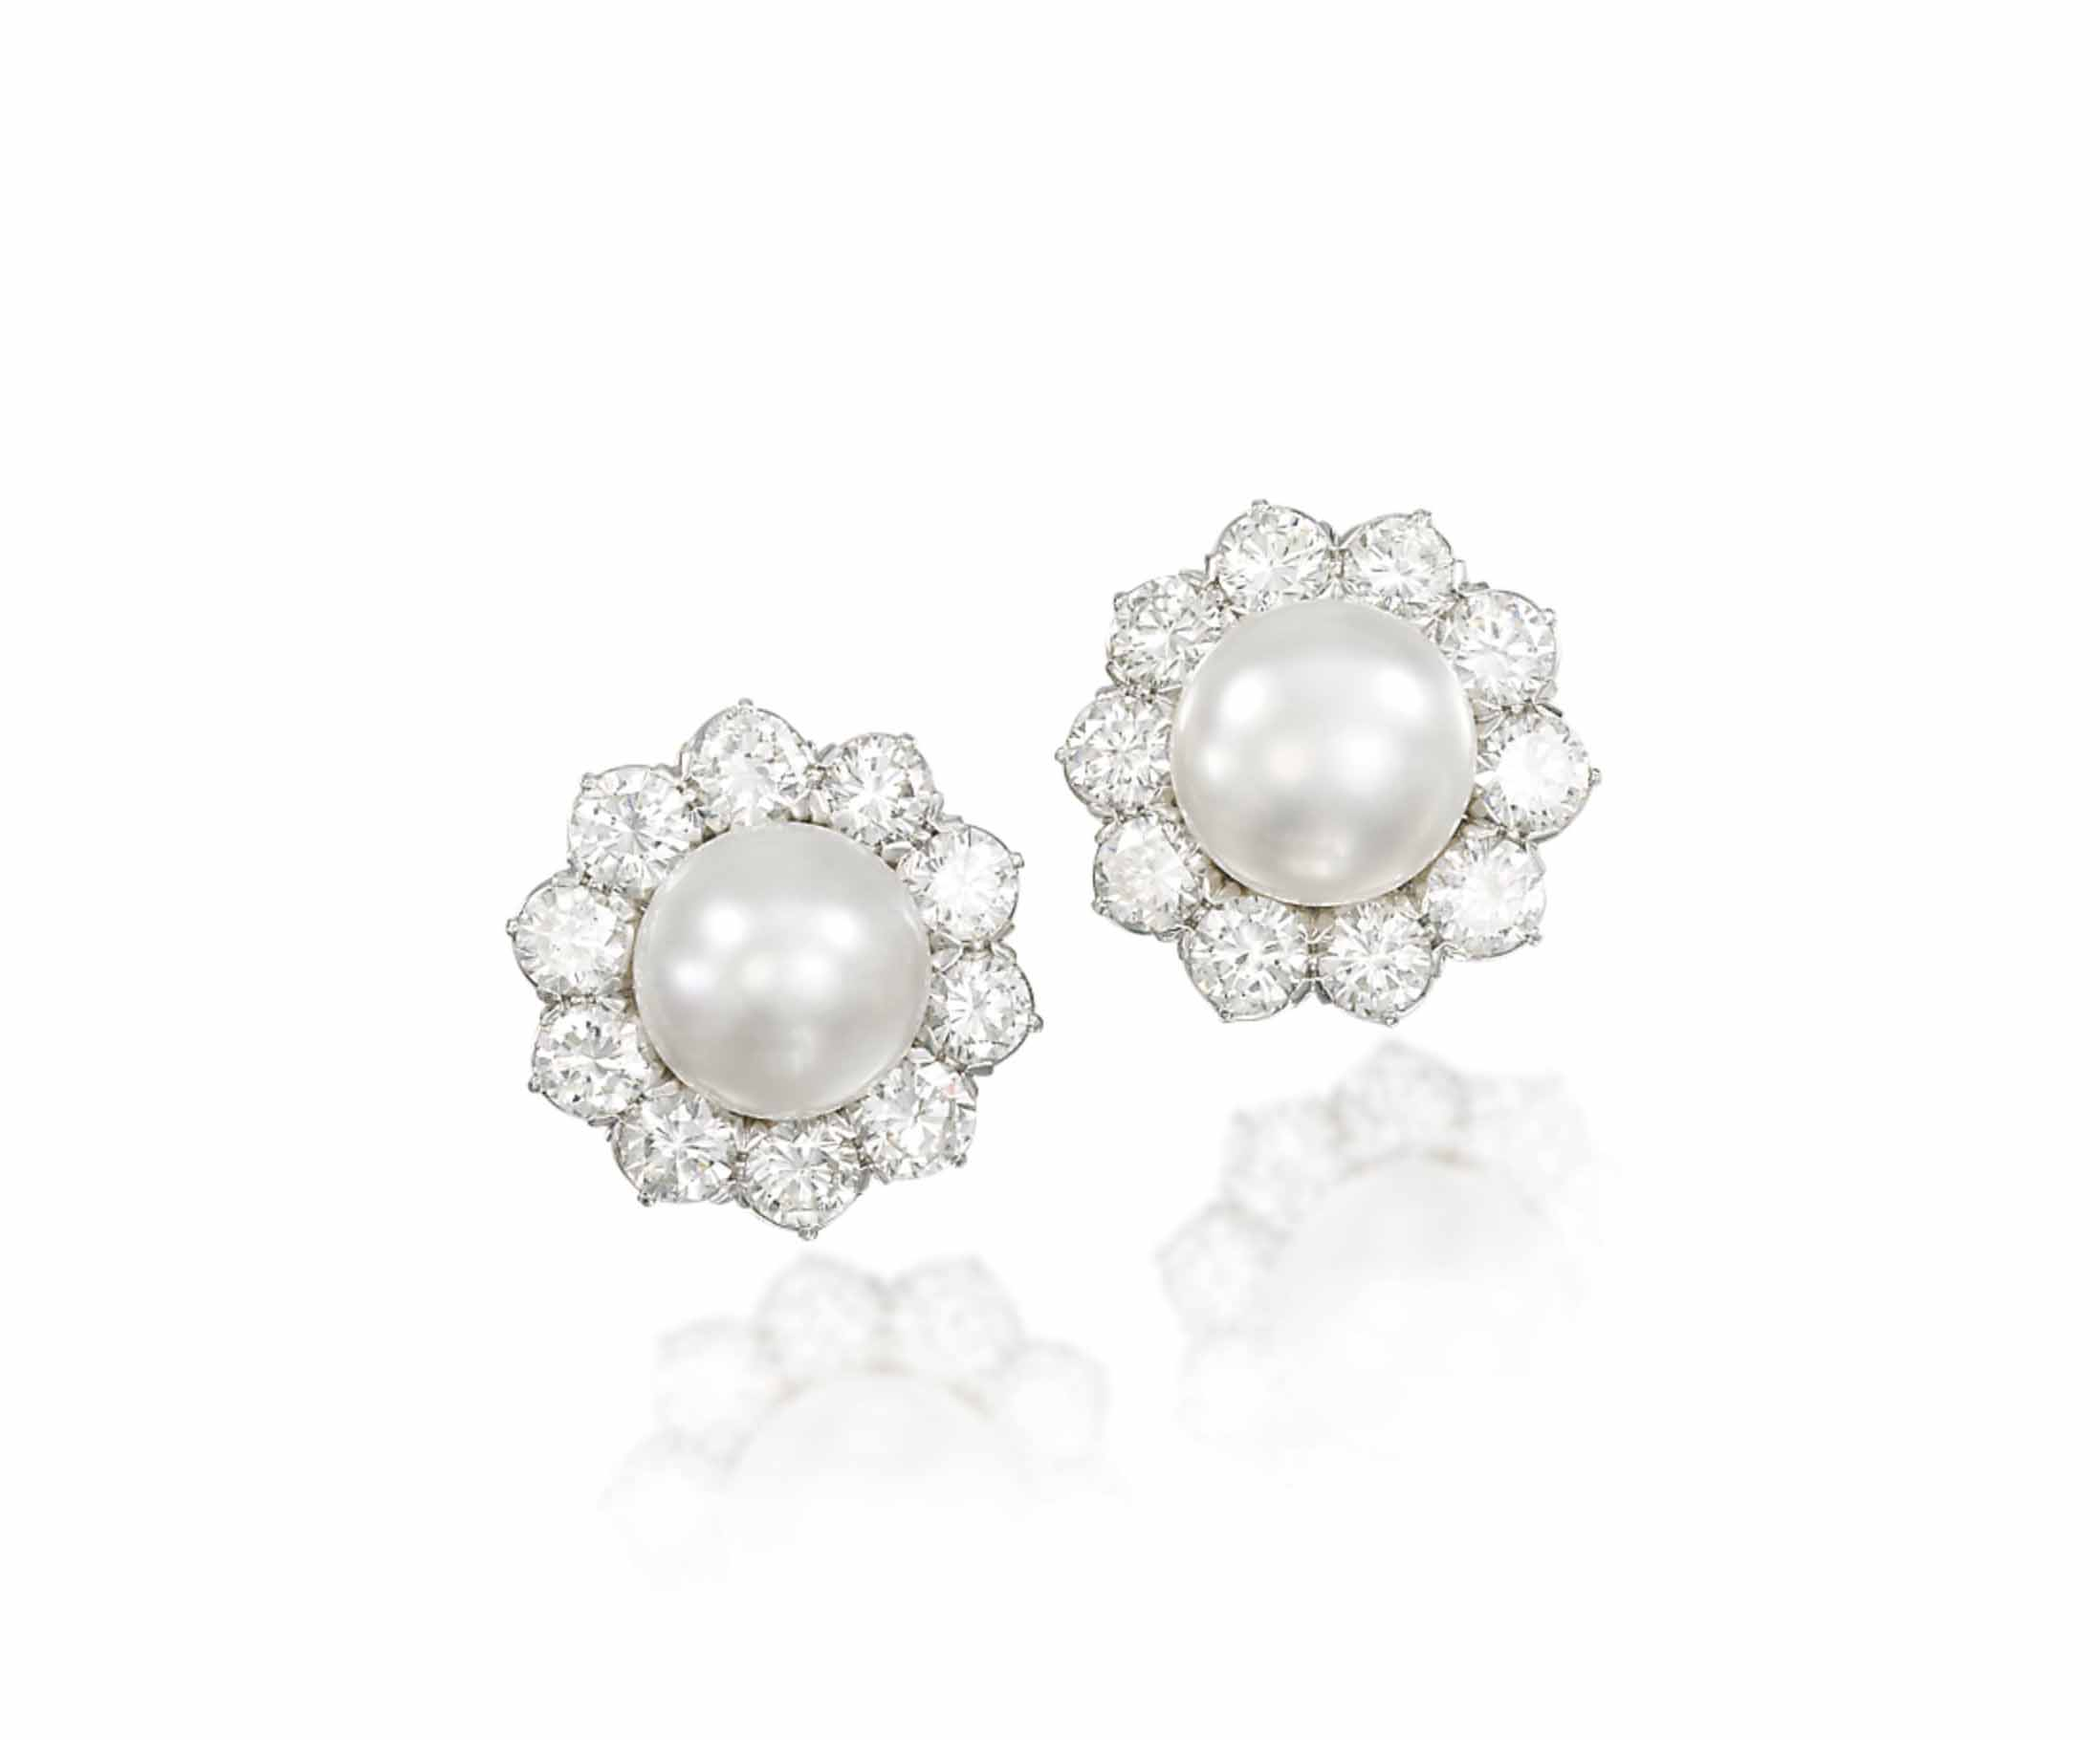 A PAIR OF CULTURED PEARL AND DIAMOND EAR CLIPS, BY VENTRELLA